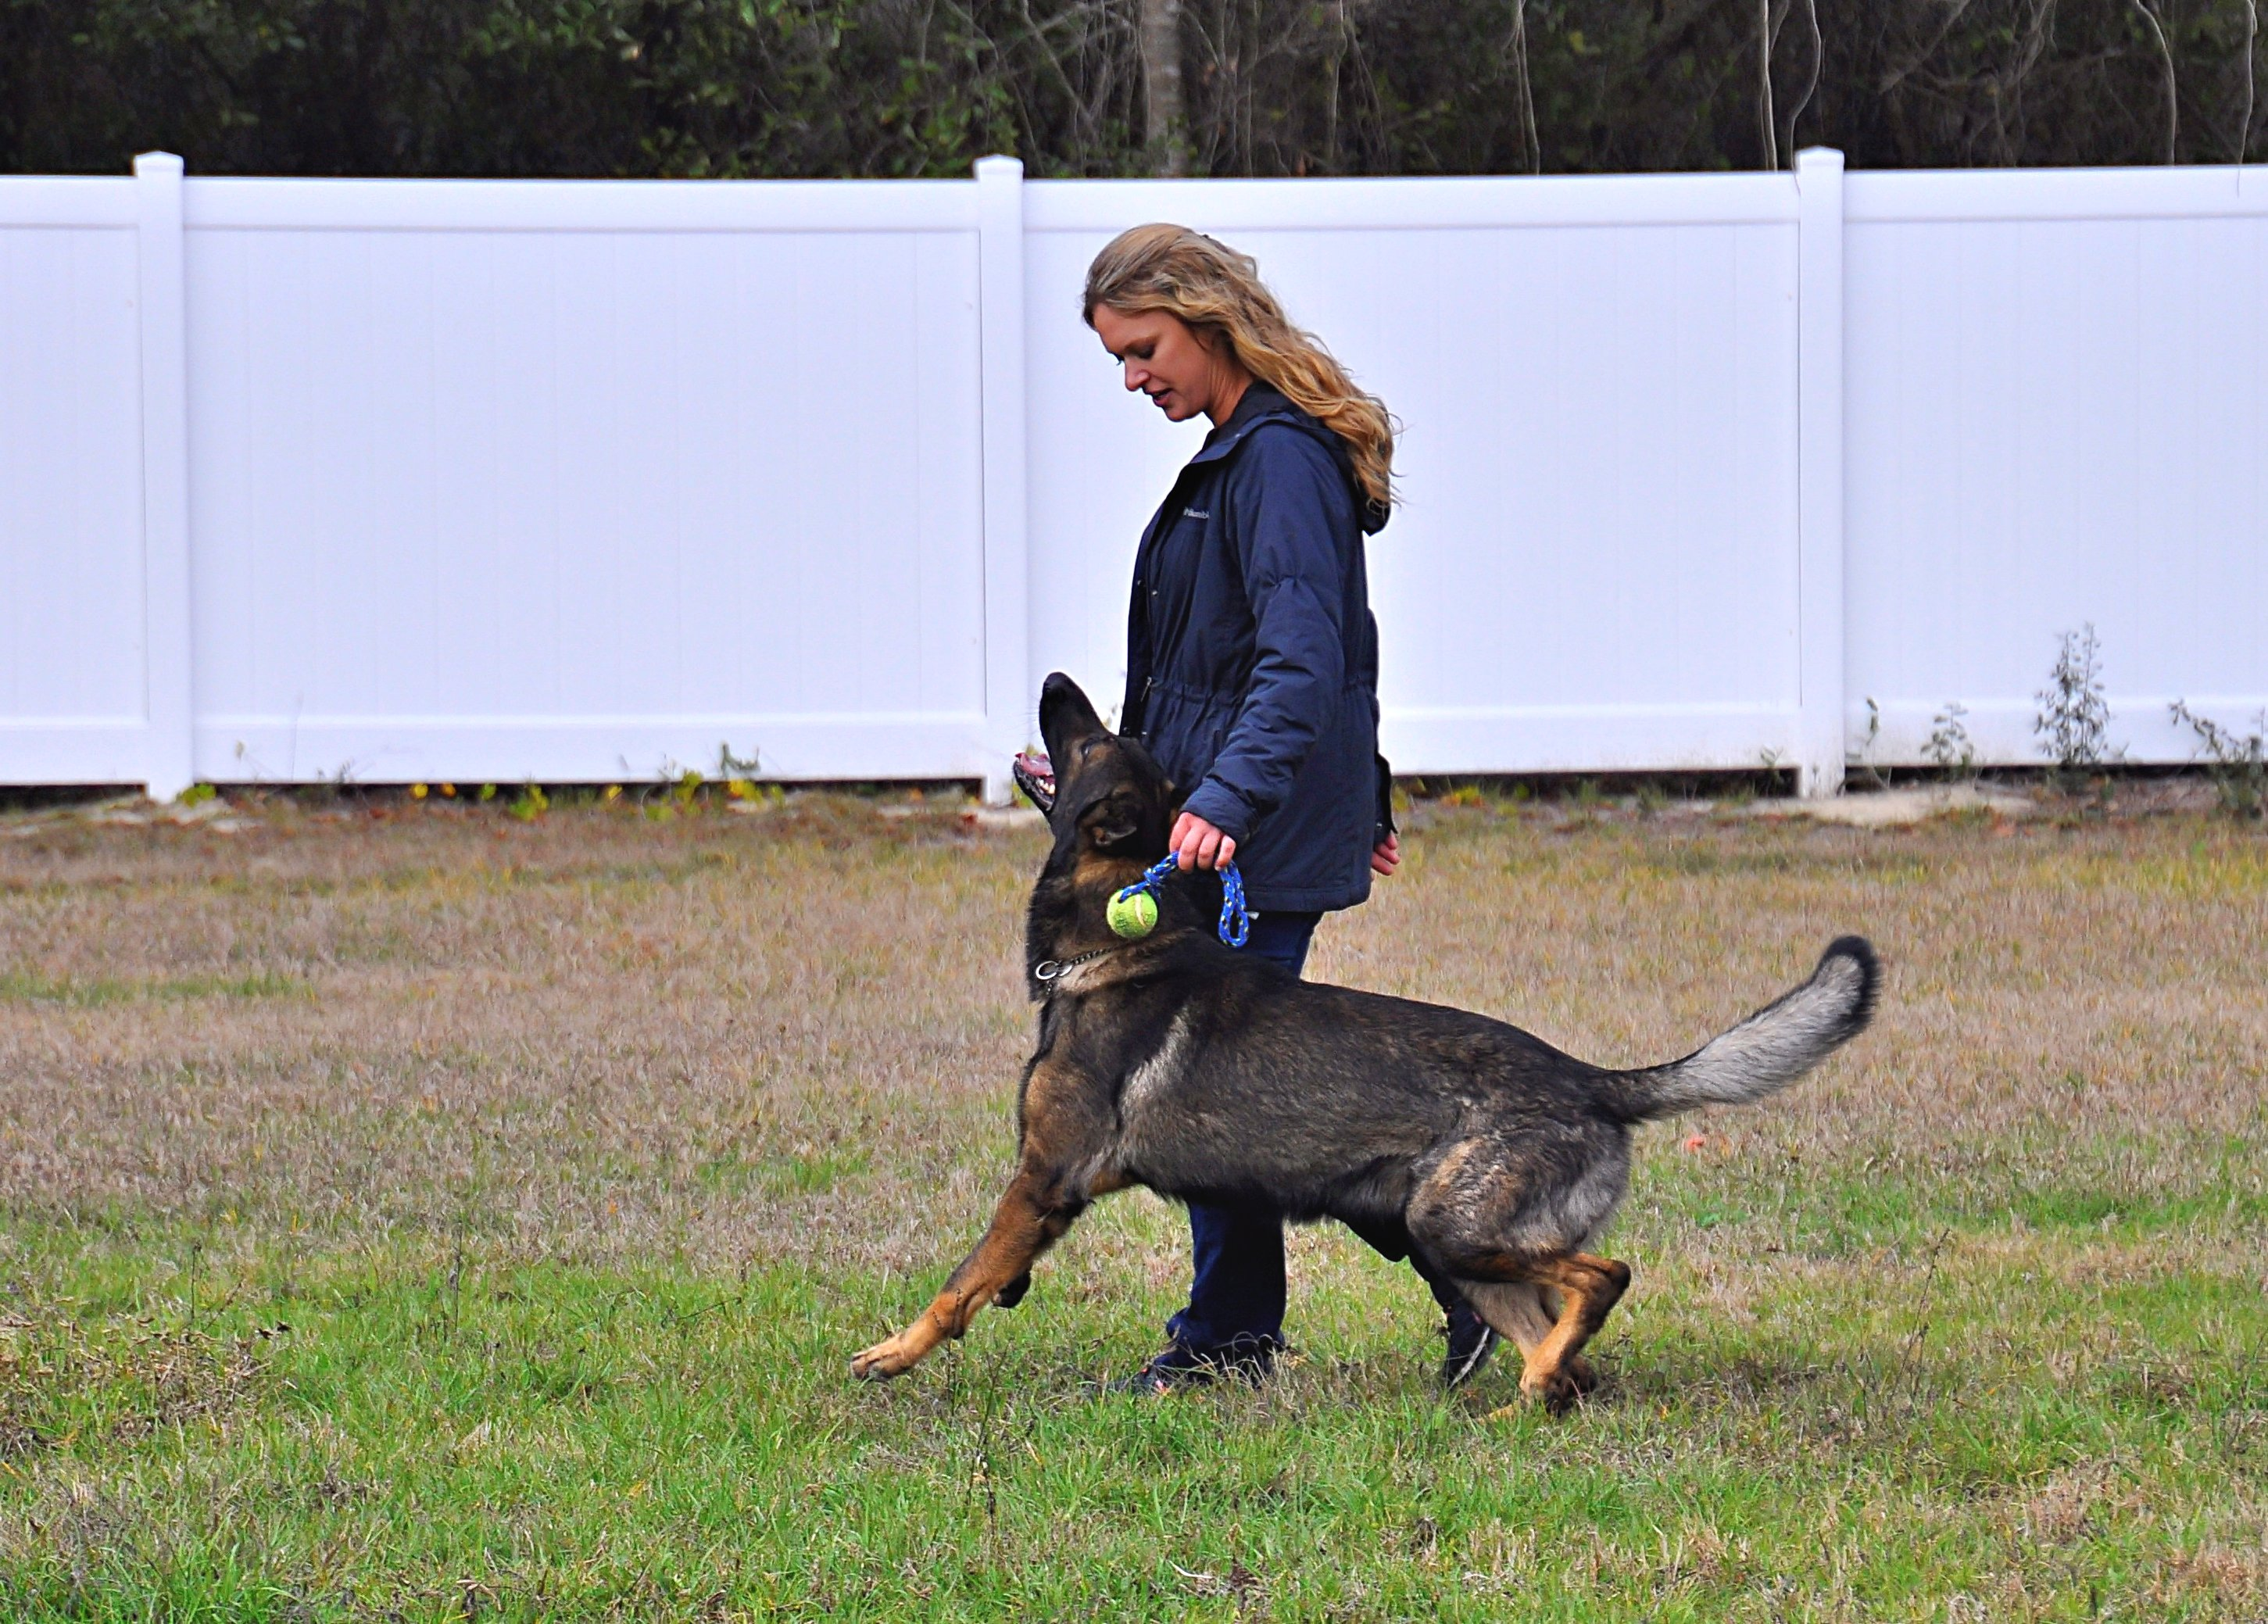 Training An Older Dog Obedience